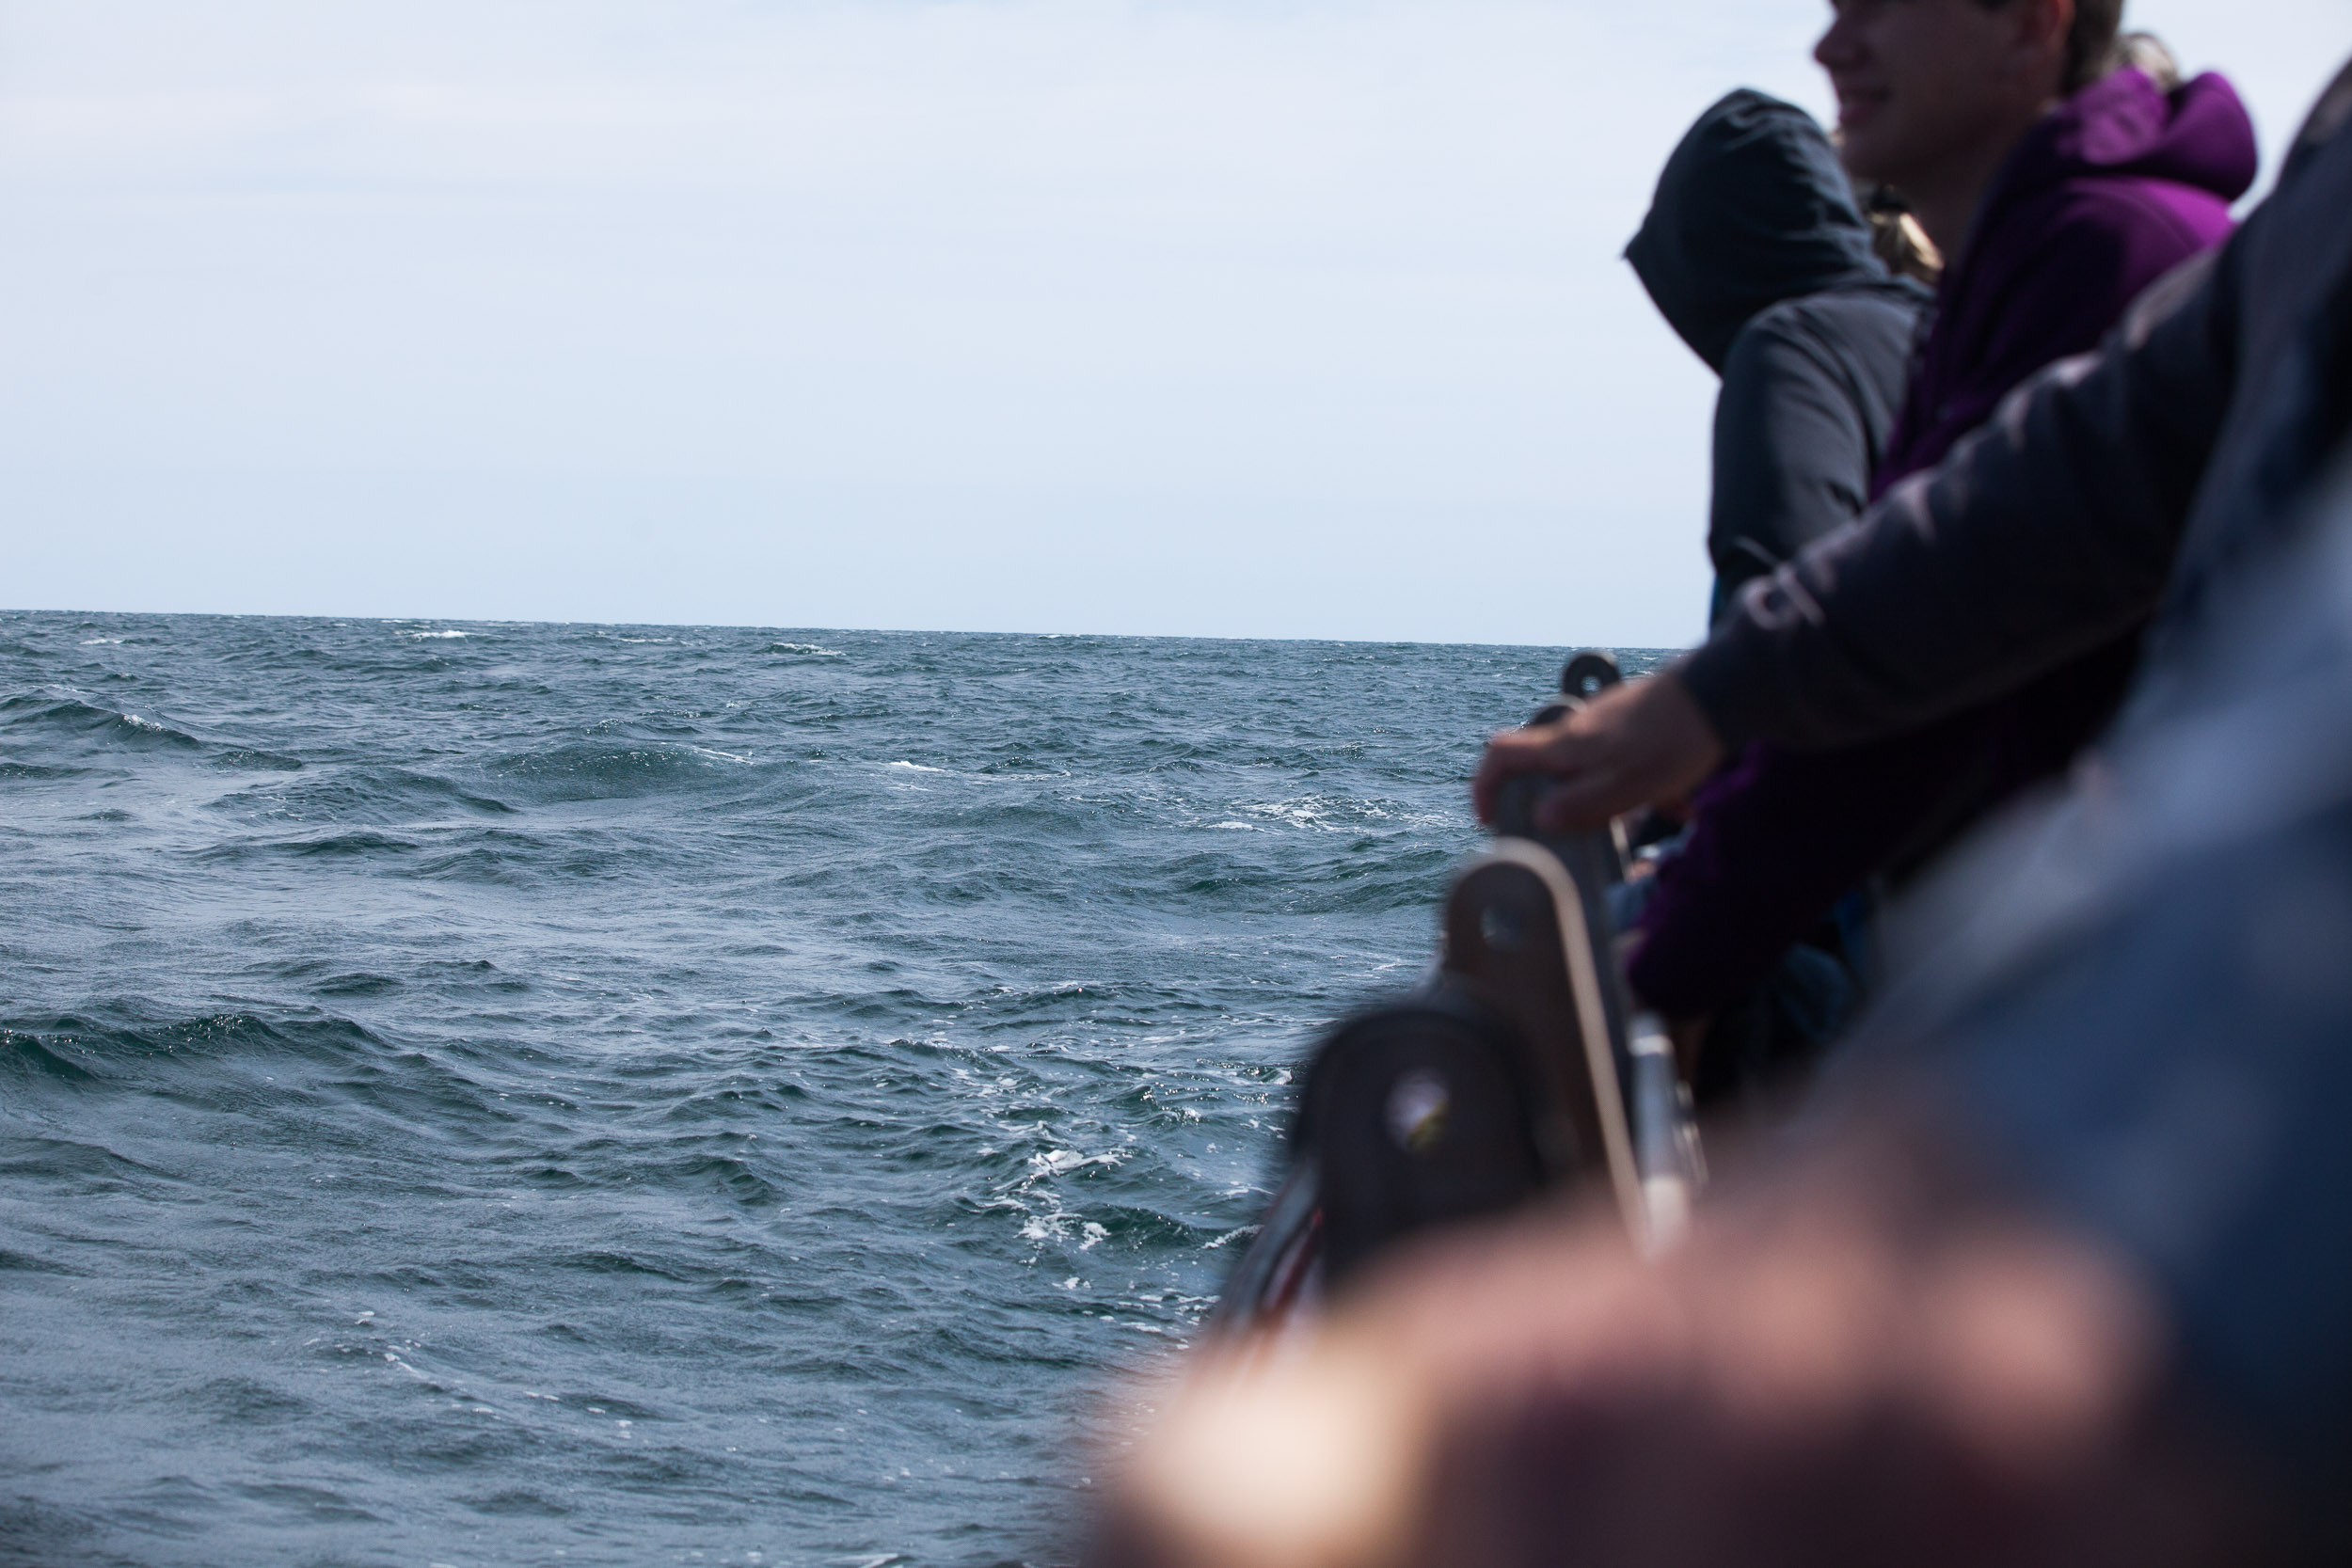 Whale watchers on the side of a boat looking into the ocean- travel photography cape breton nova scotia for re:porter magazine